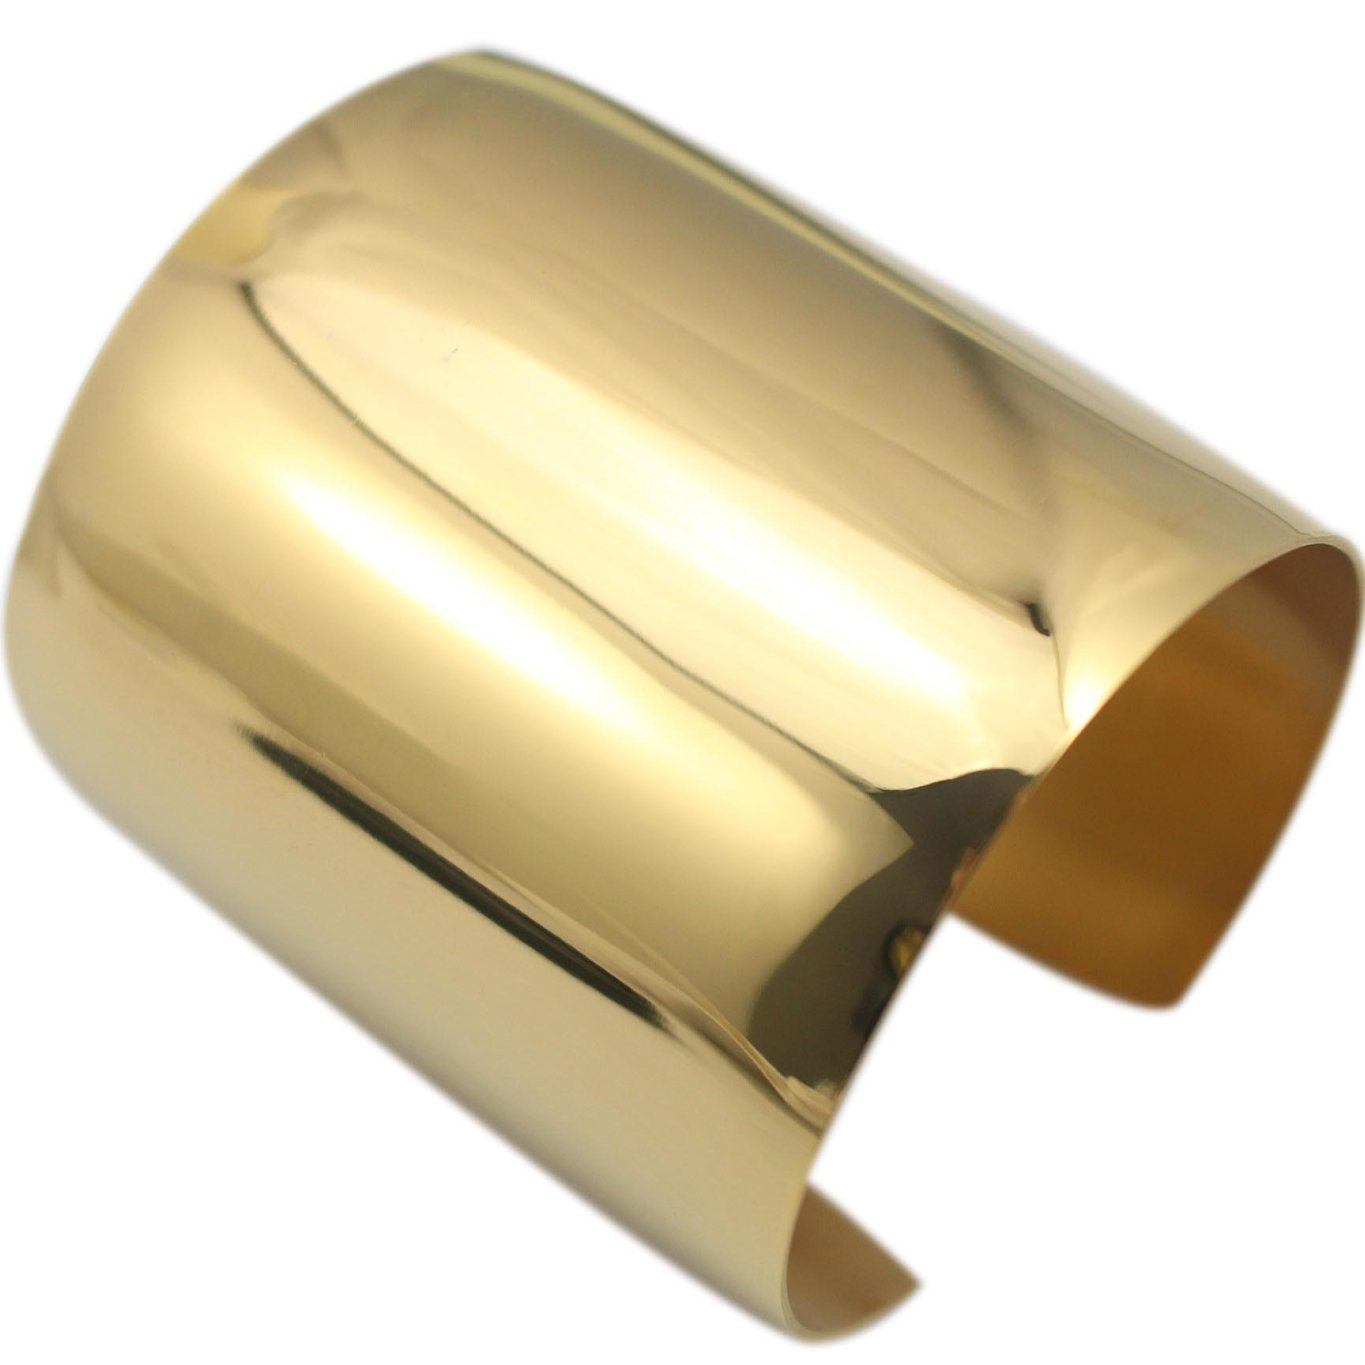 COUYA Stainless Steel Gold Plated Women Big Heavy Long Cuff Bangle Bracelet by COUYA